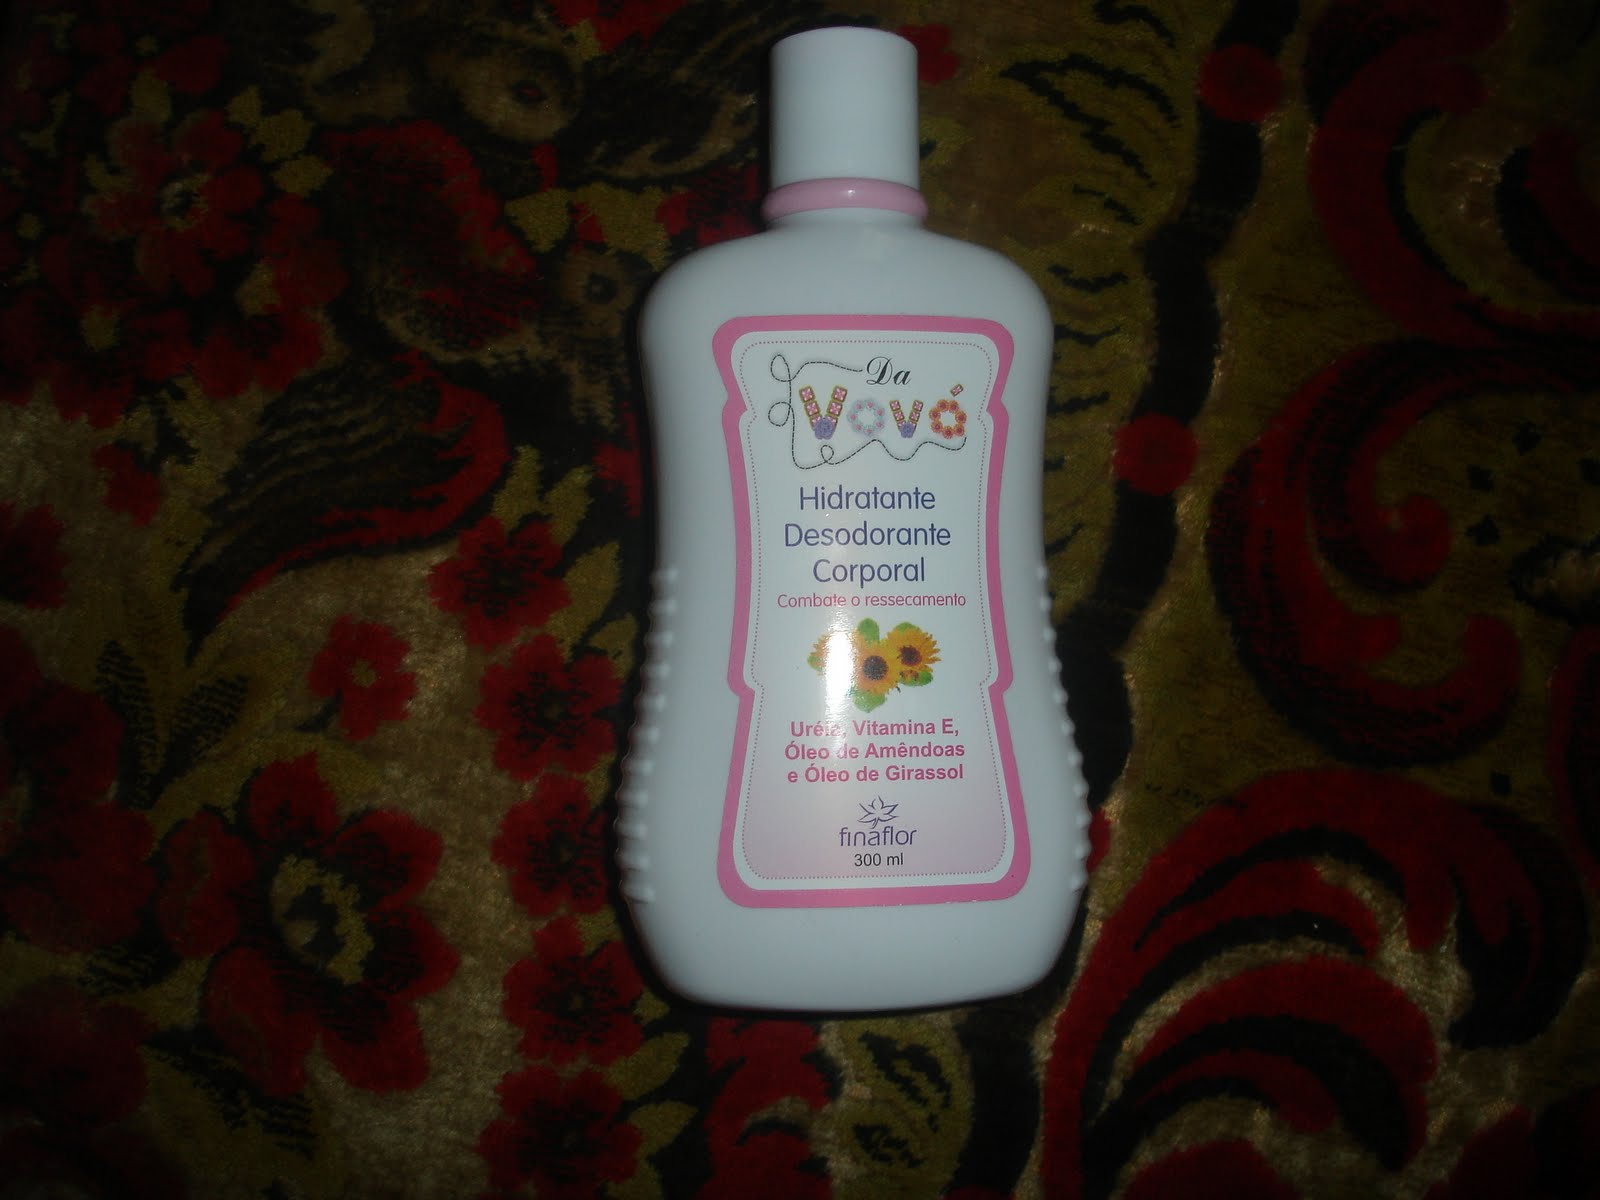 Body moisturizer I found in a drugstore. I heard about it from a